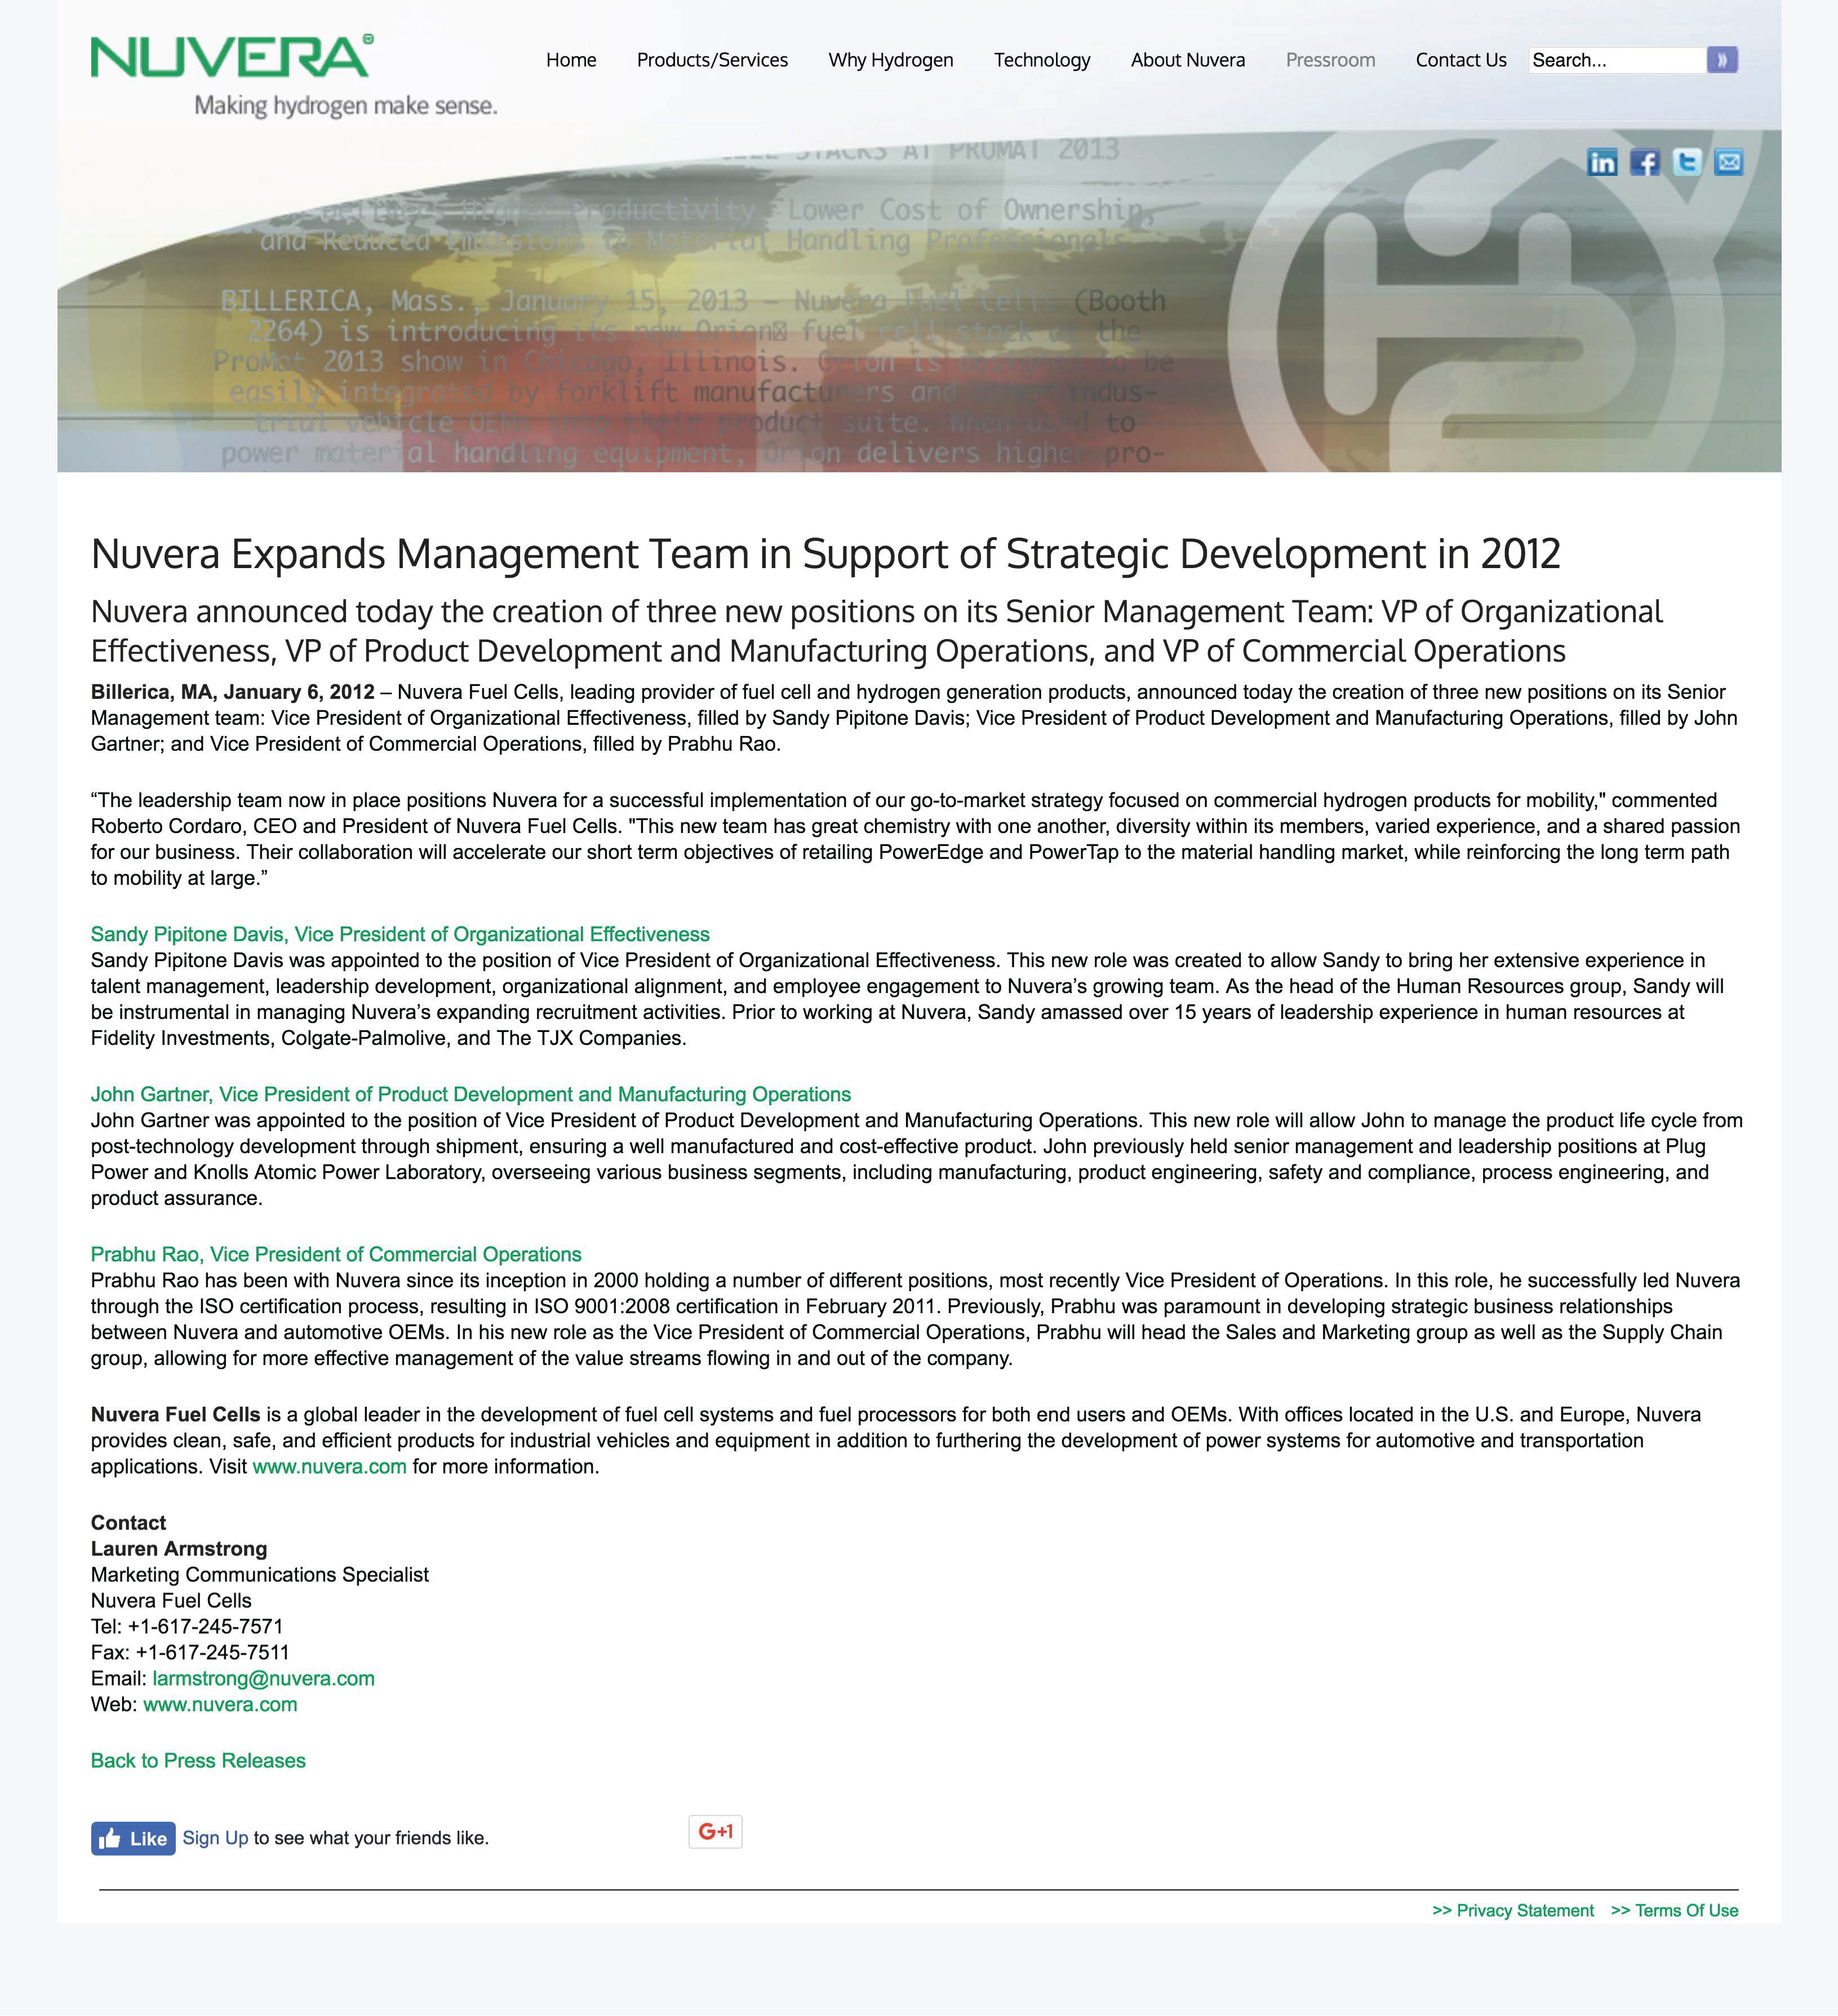 Nuvera Expands Management Team in Support of Strategic Development in 2012